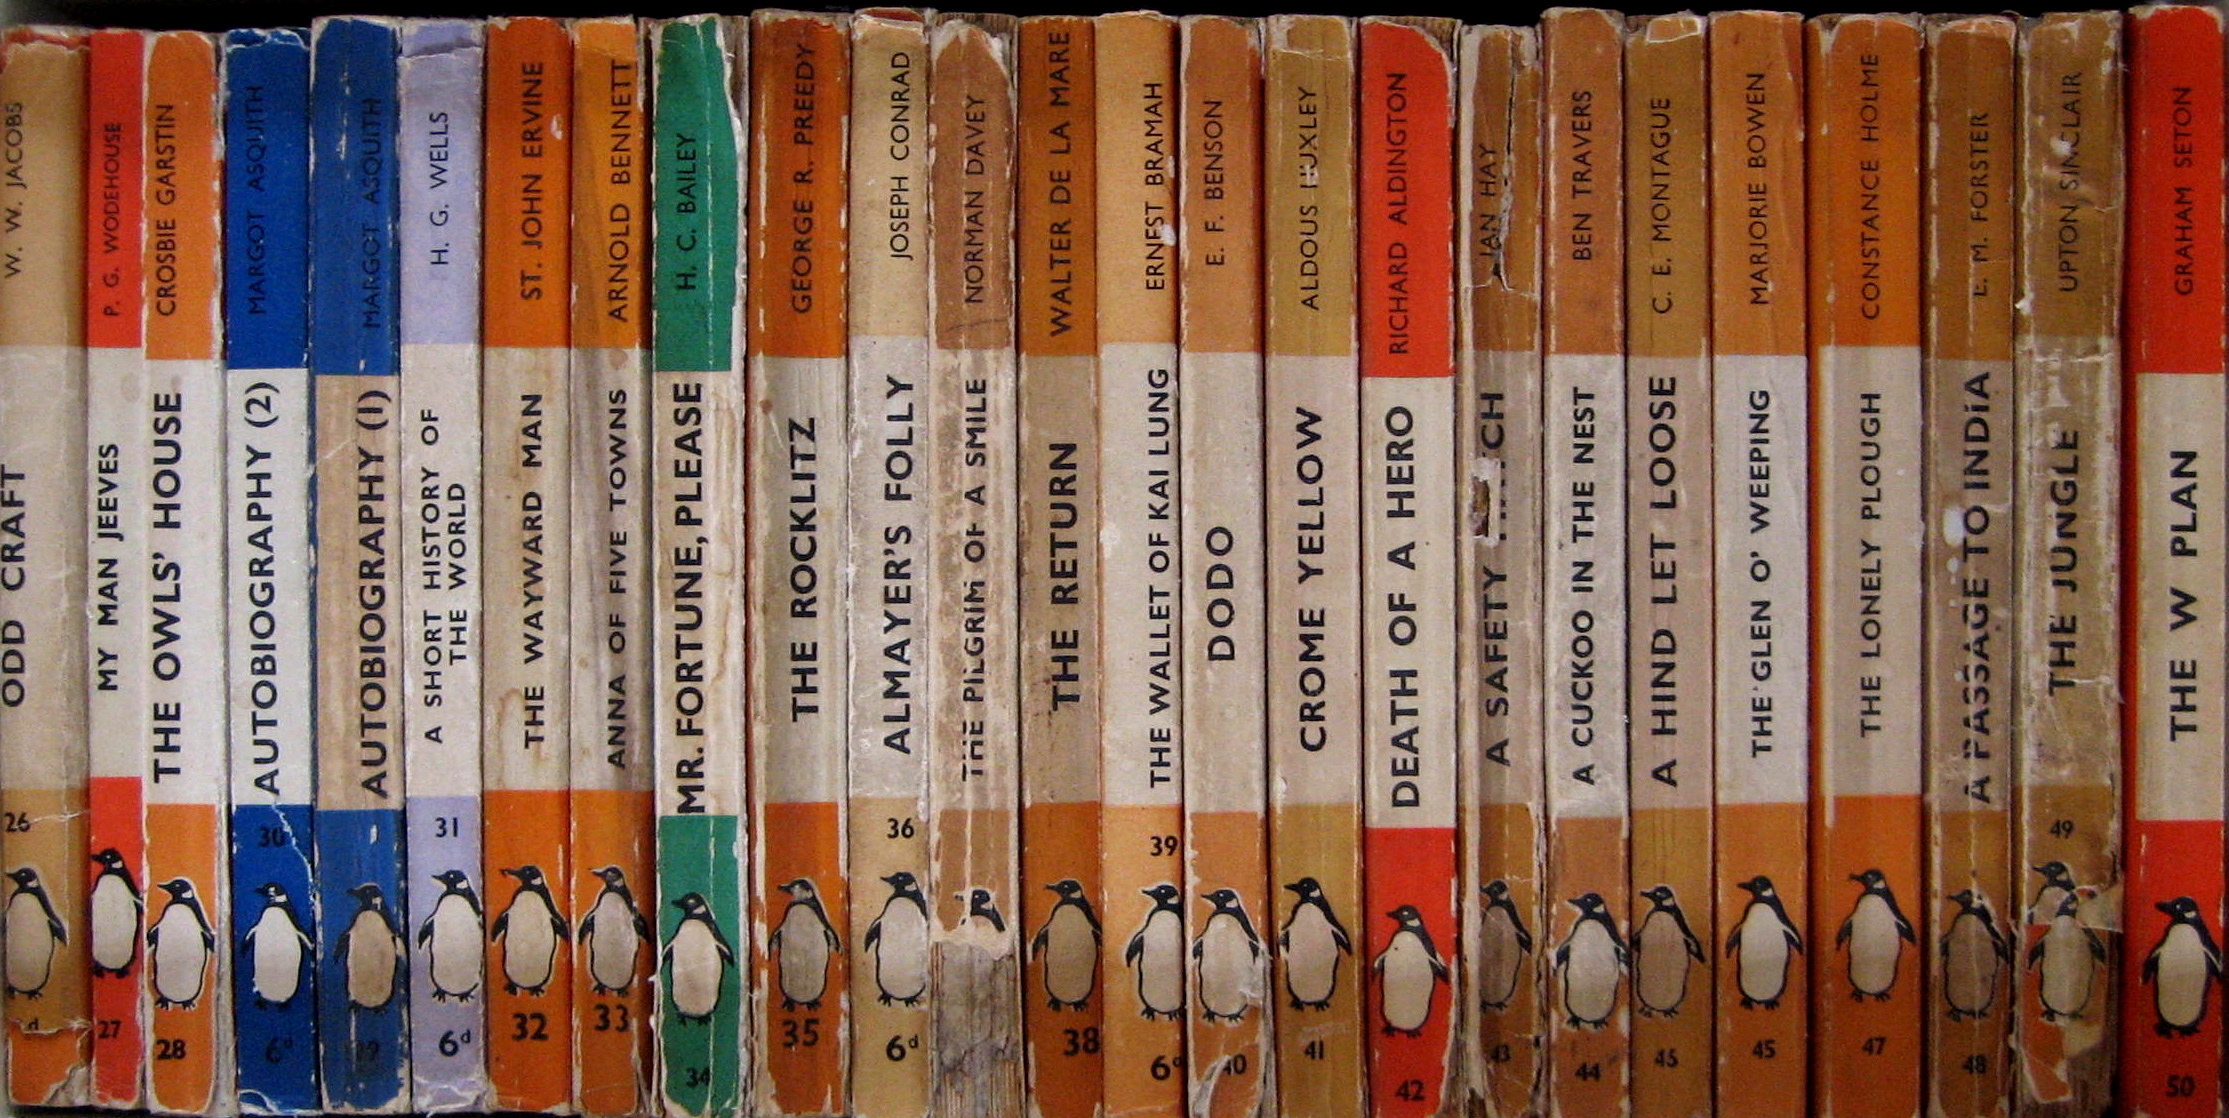 One Hundred Penguin Books Spitalfields Life